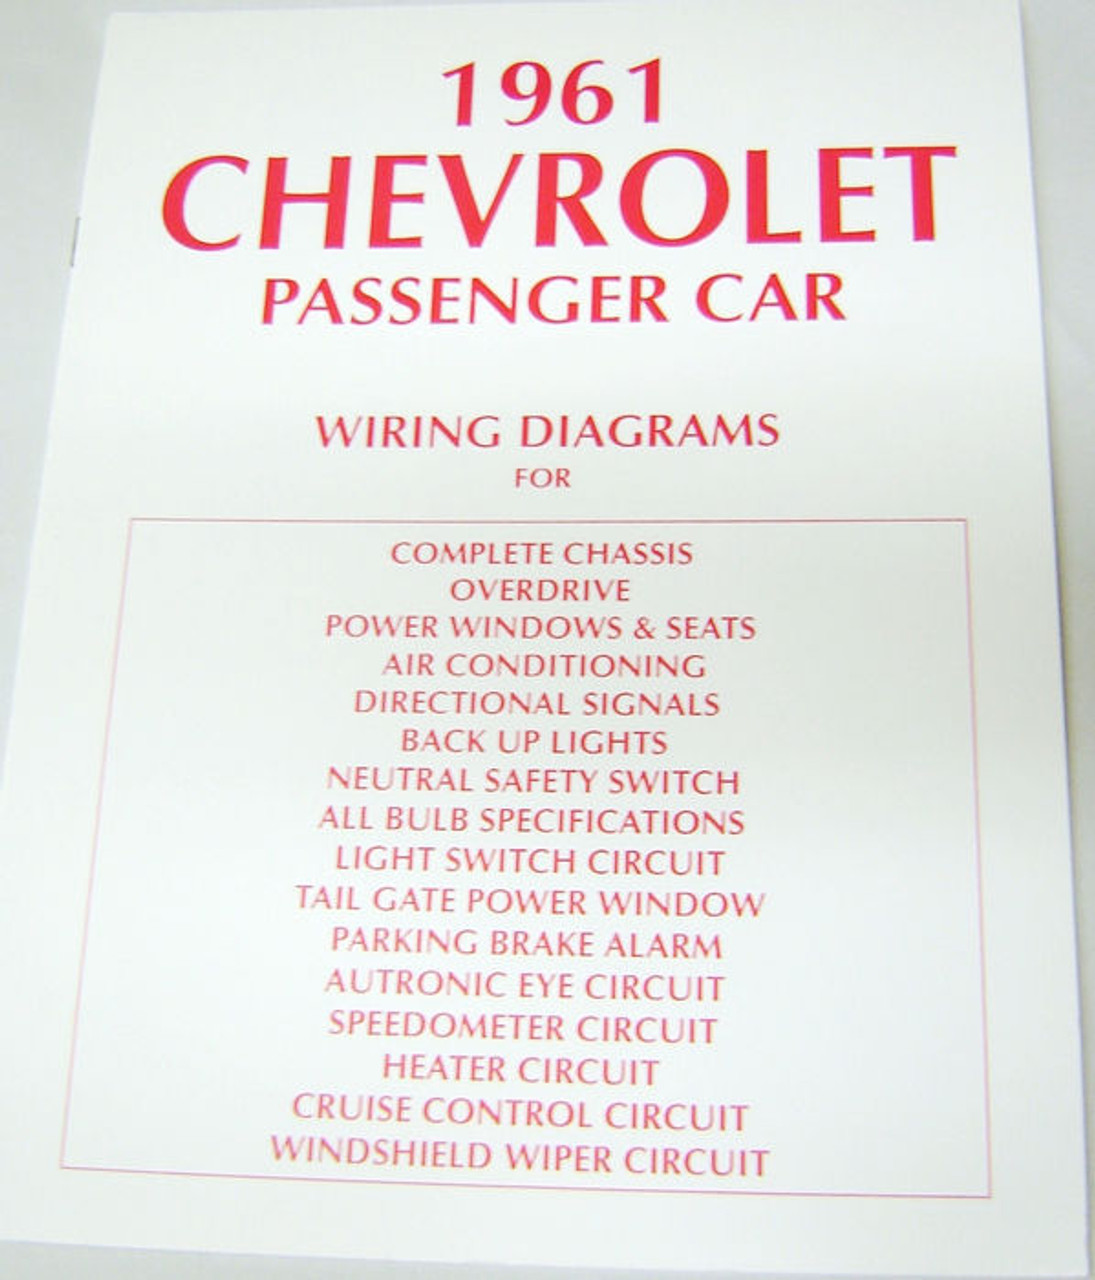 61 Chevy Impala Electrical Wiring Diagram Manual 1961